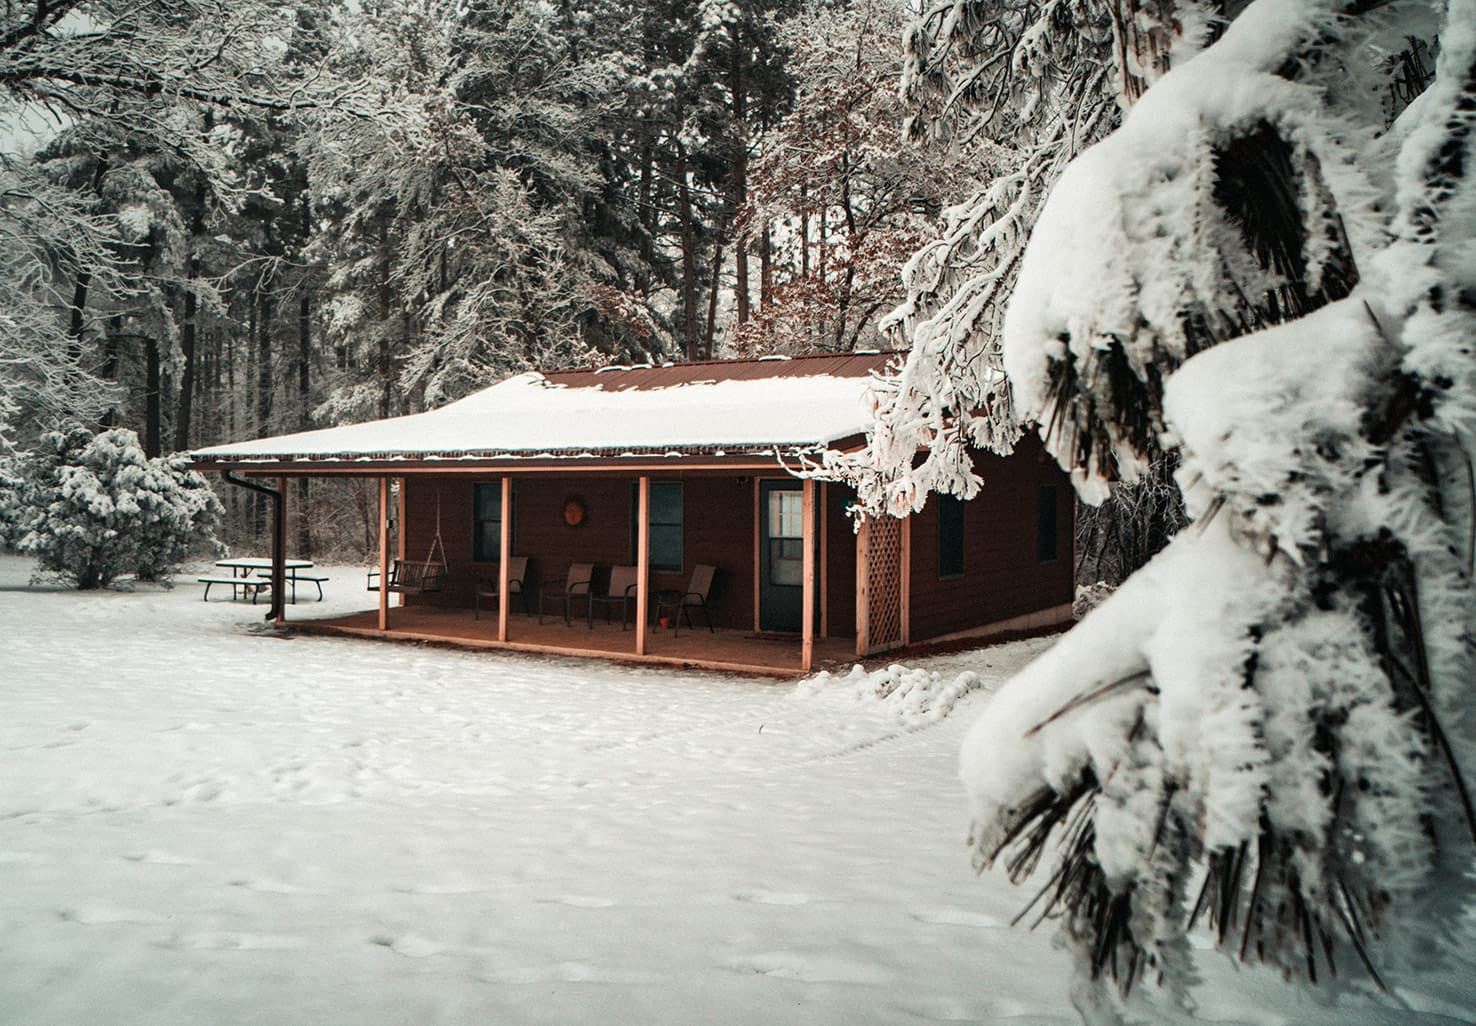 Exterior view of a cabin in winter with snow and icicles